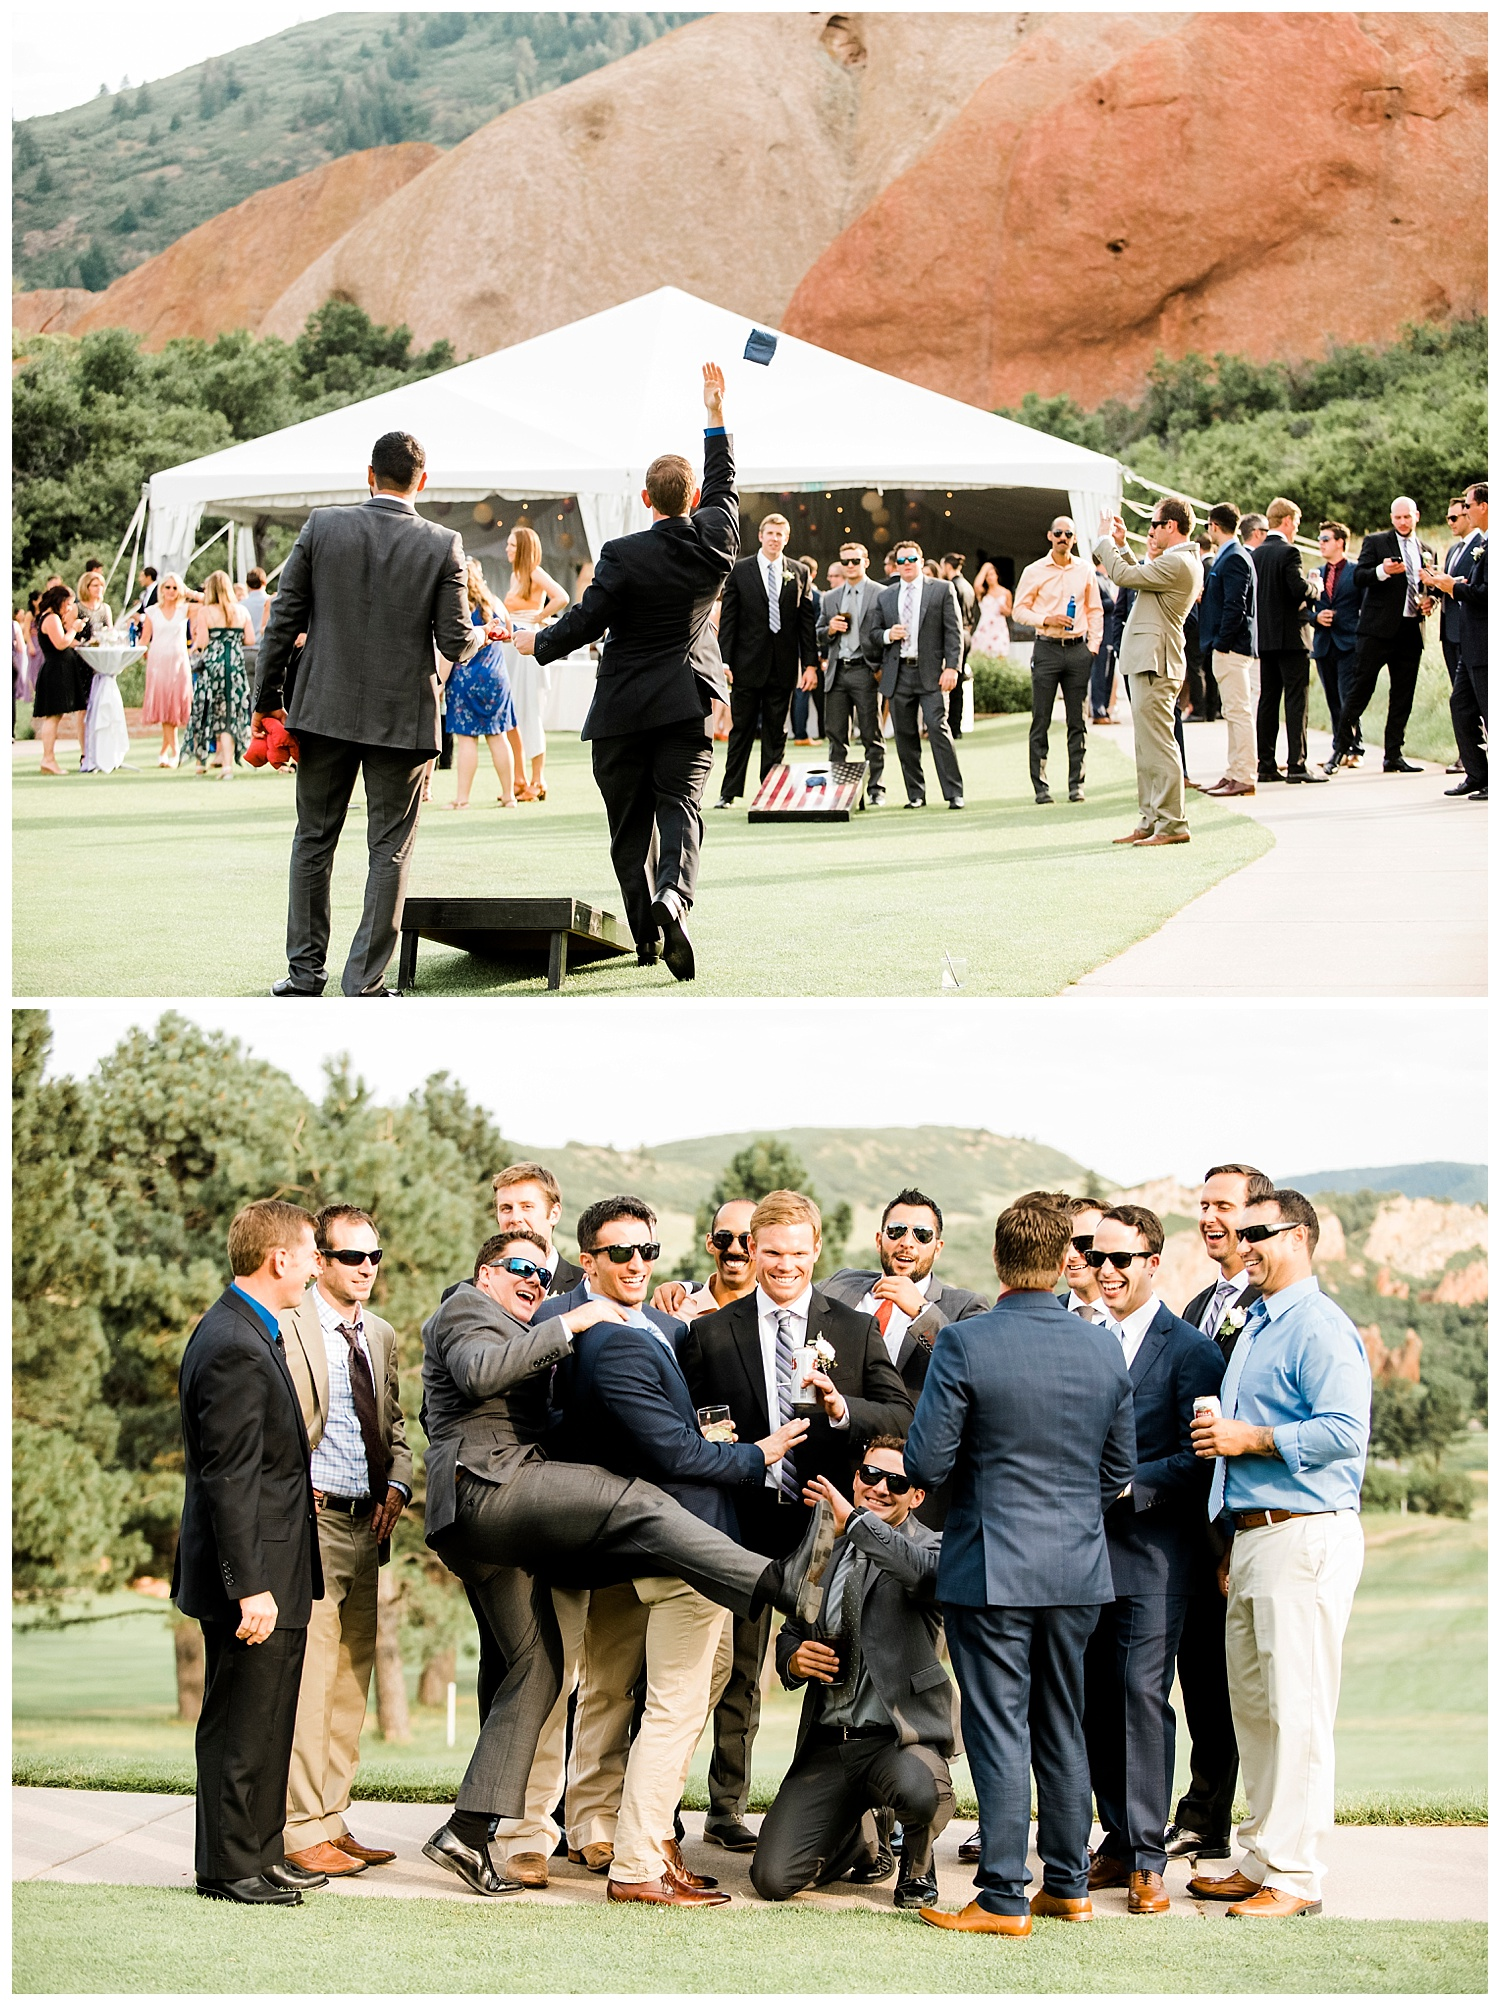 Arrowhead_Golf_Course_Wedding_Littleton_Colorado_Apollo_Fields_173.jpg